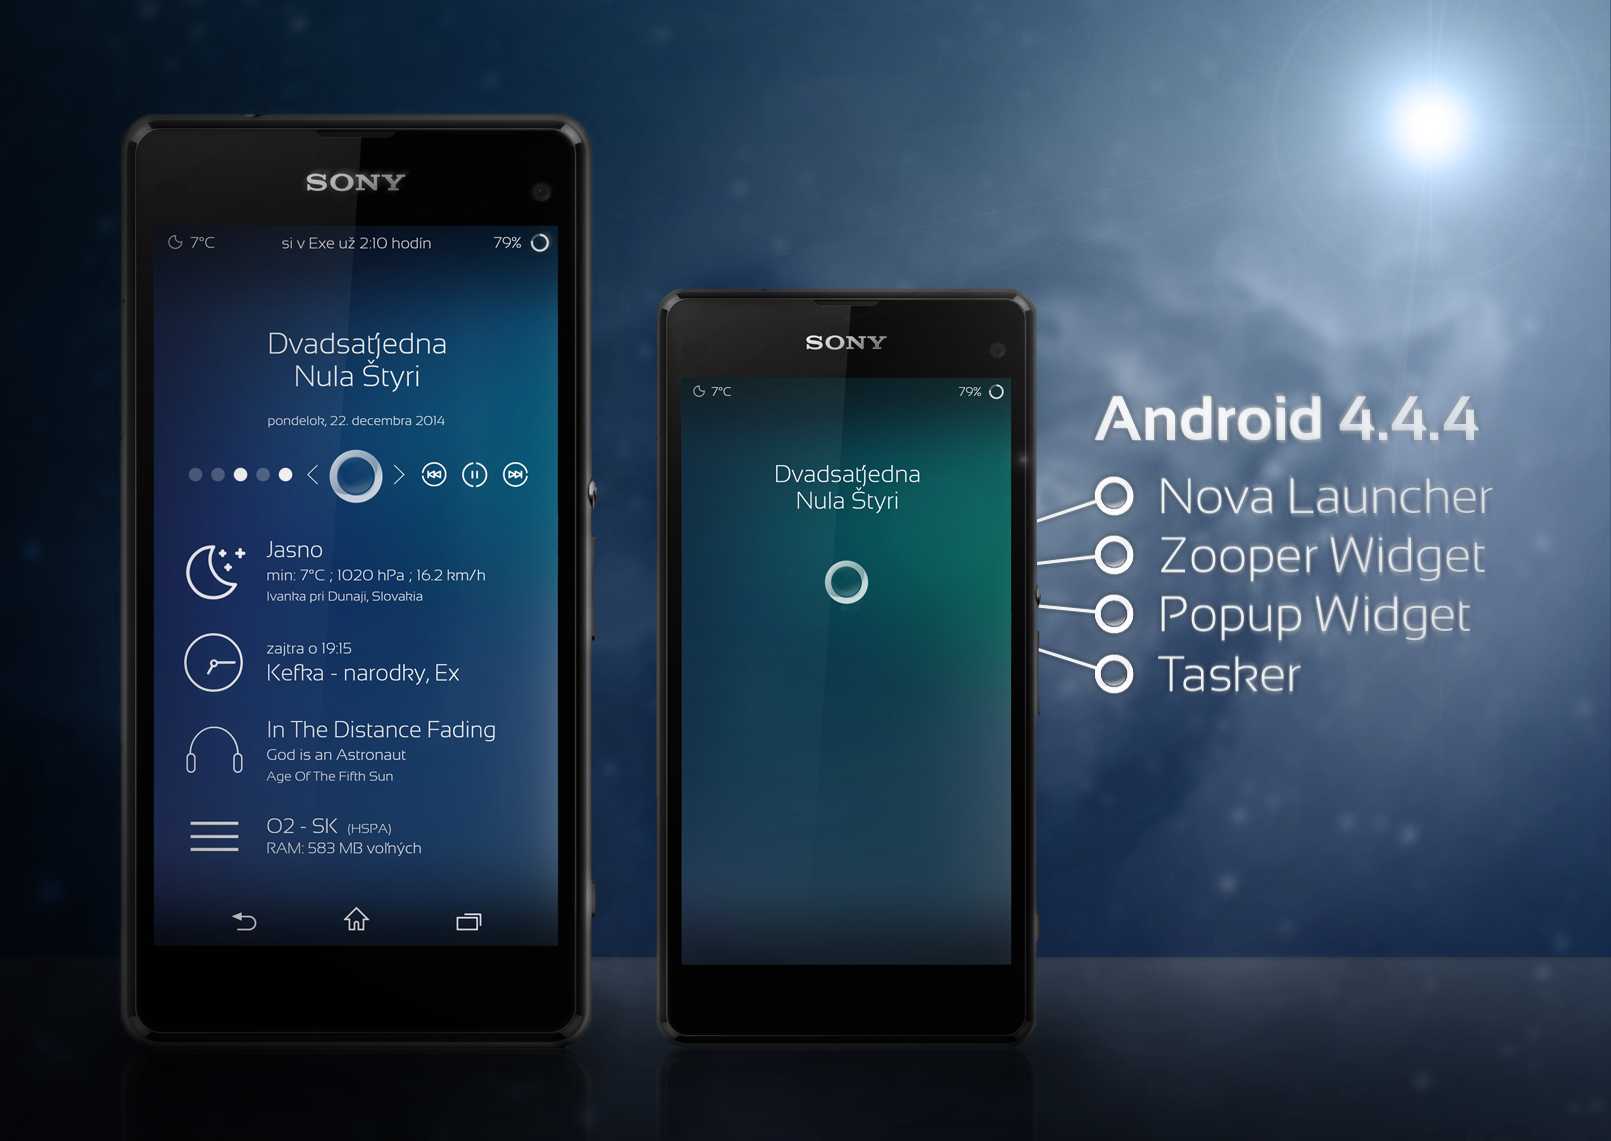 Blu12'd Android Homescreen